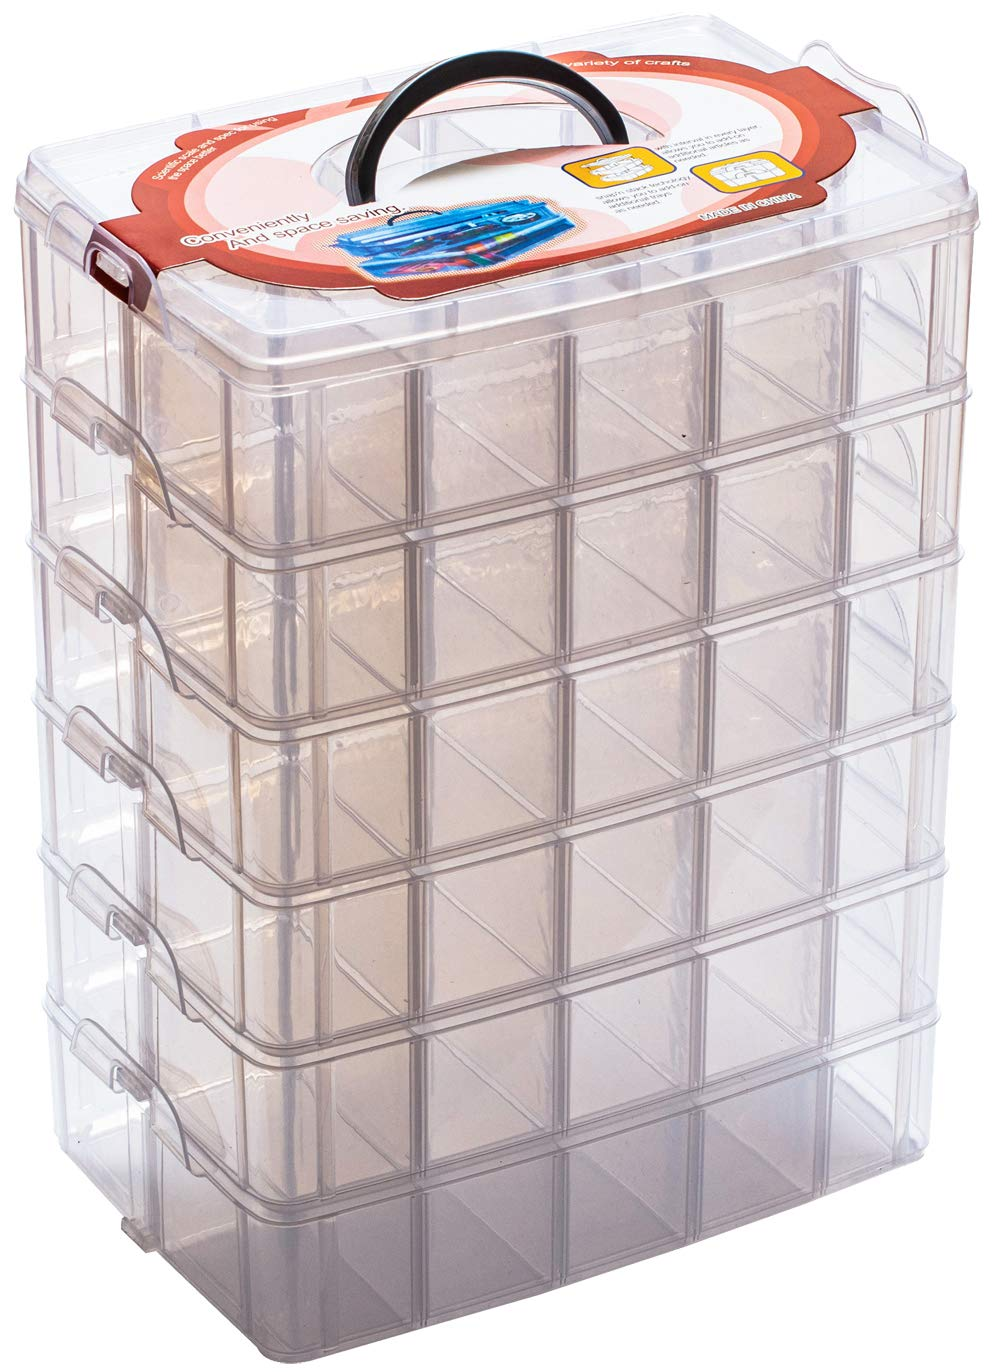 Sooyee 6 Layers Stackable Storage Container Clear 60 Adjustable Compartments,Compatible with Small Toys Arts and Crafts Piping Tips Hardware Storage Organizer